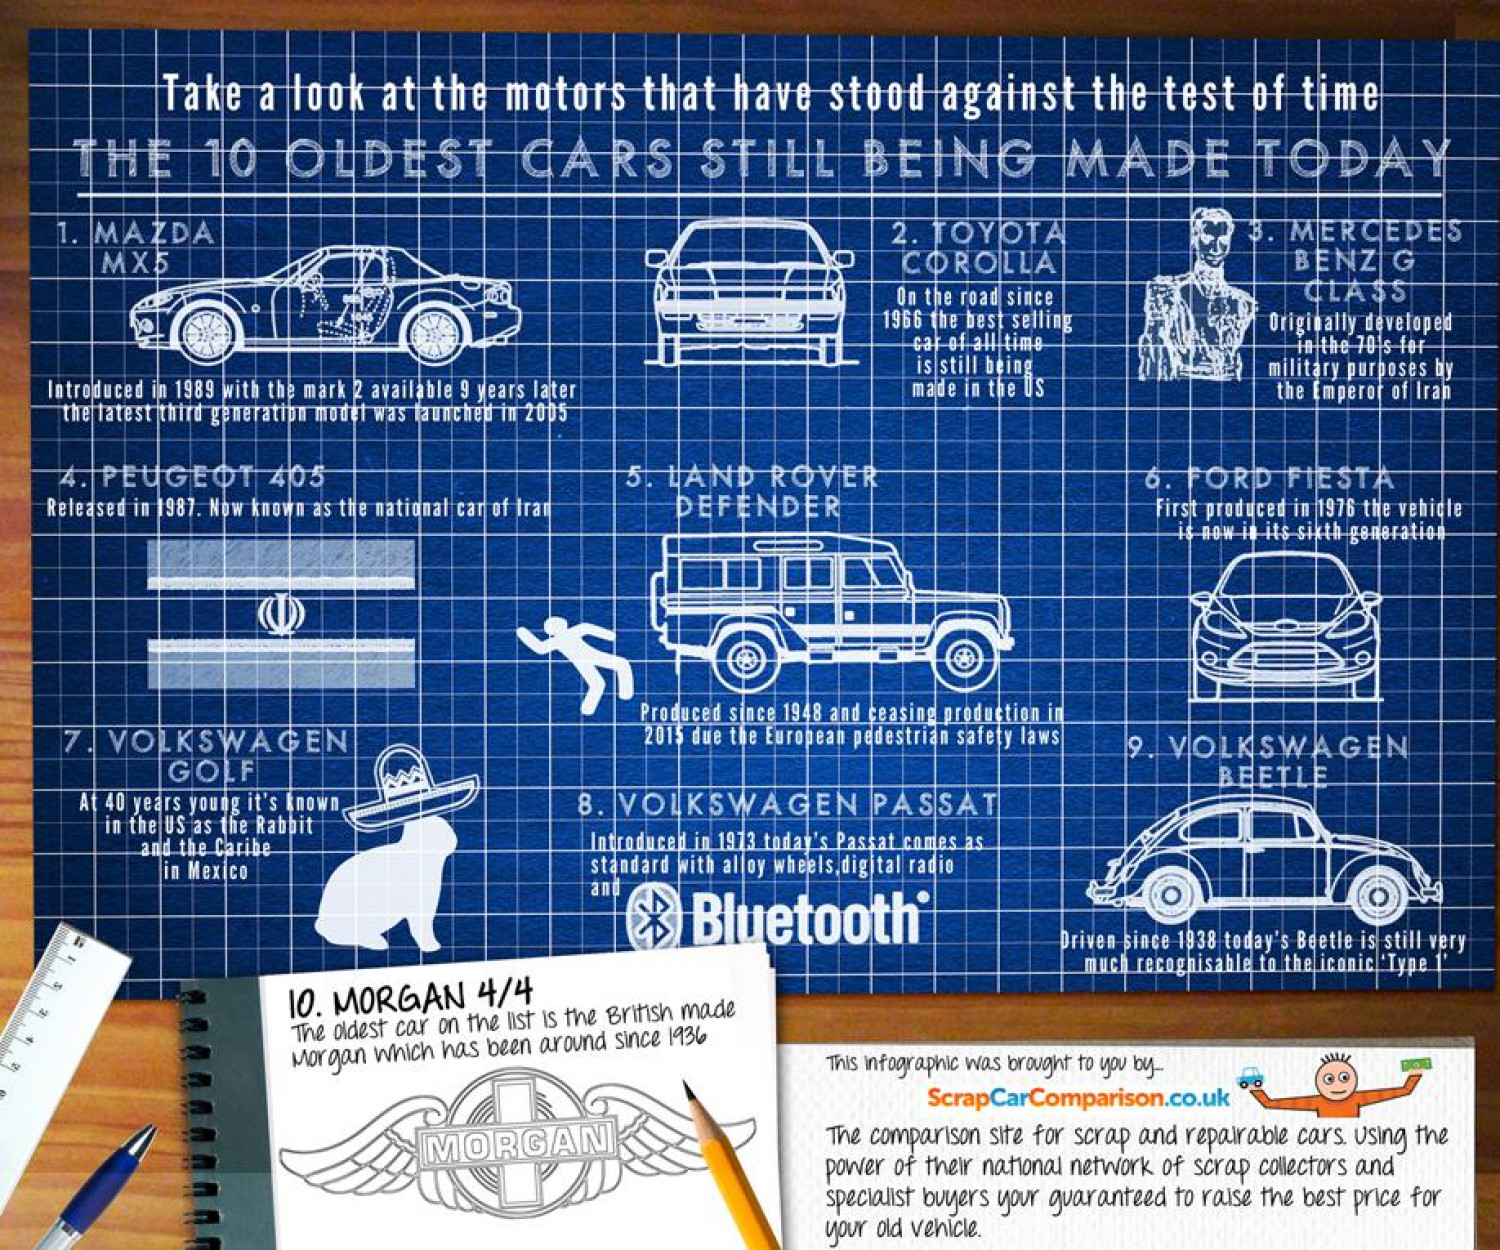 The 10 Oldest Cars Still Being Made Today Infographic